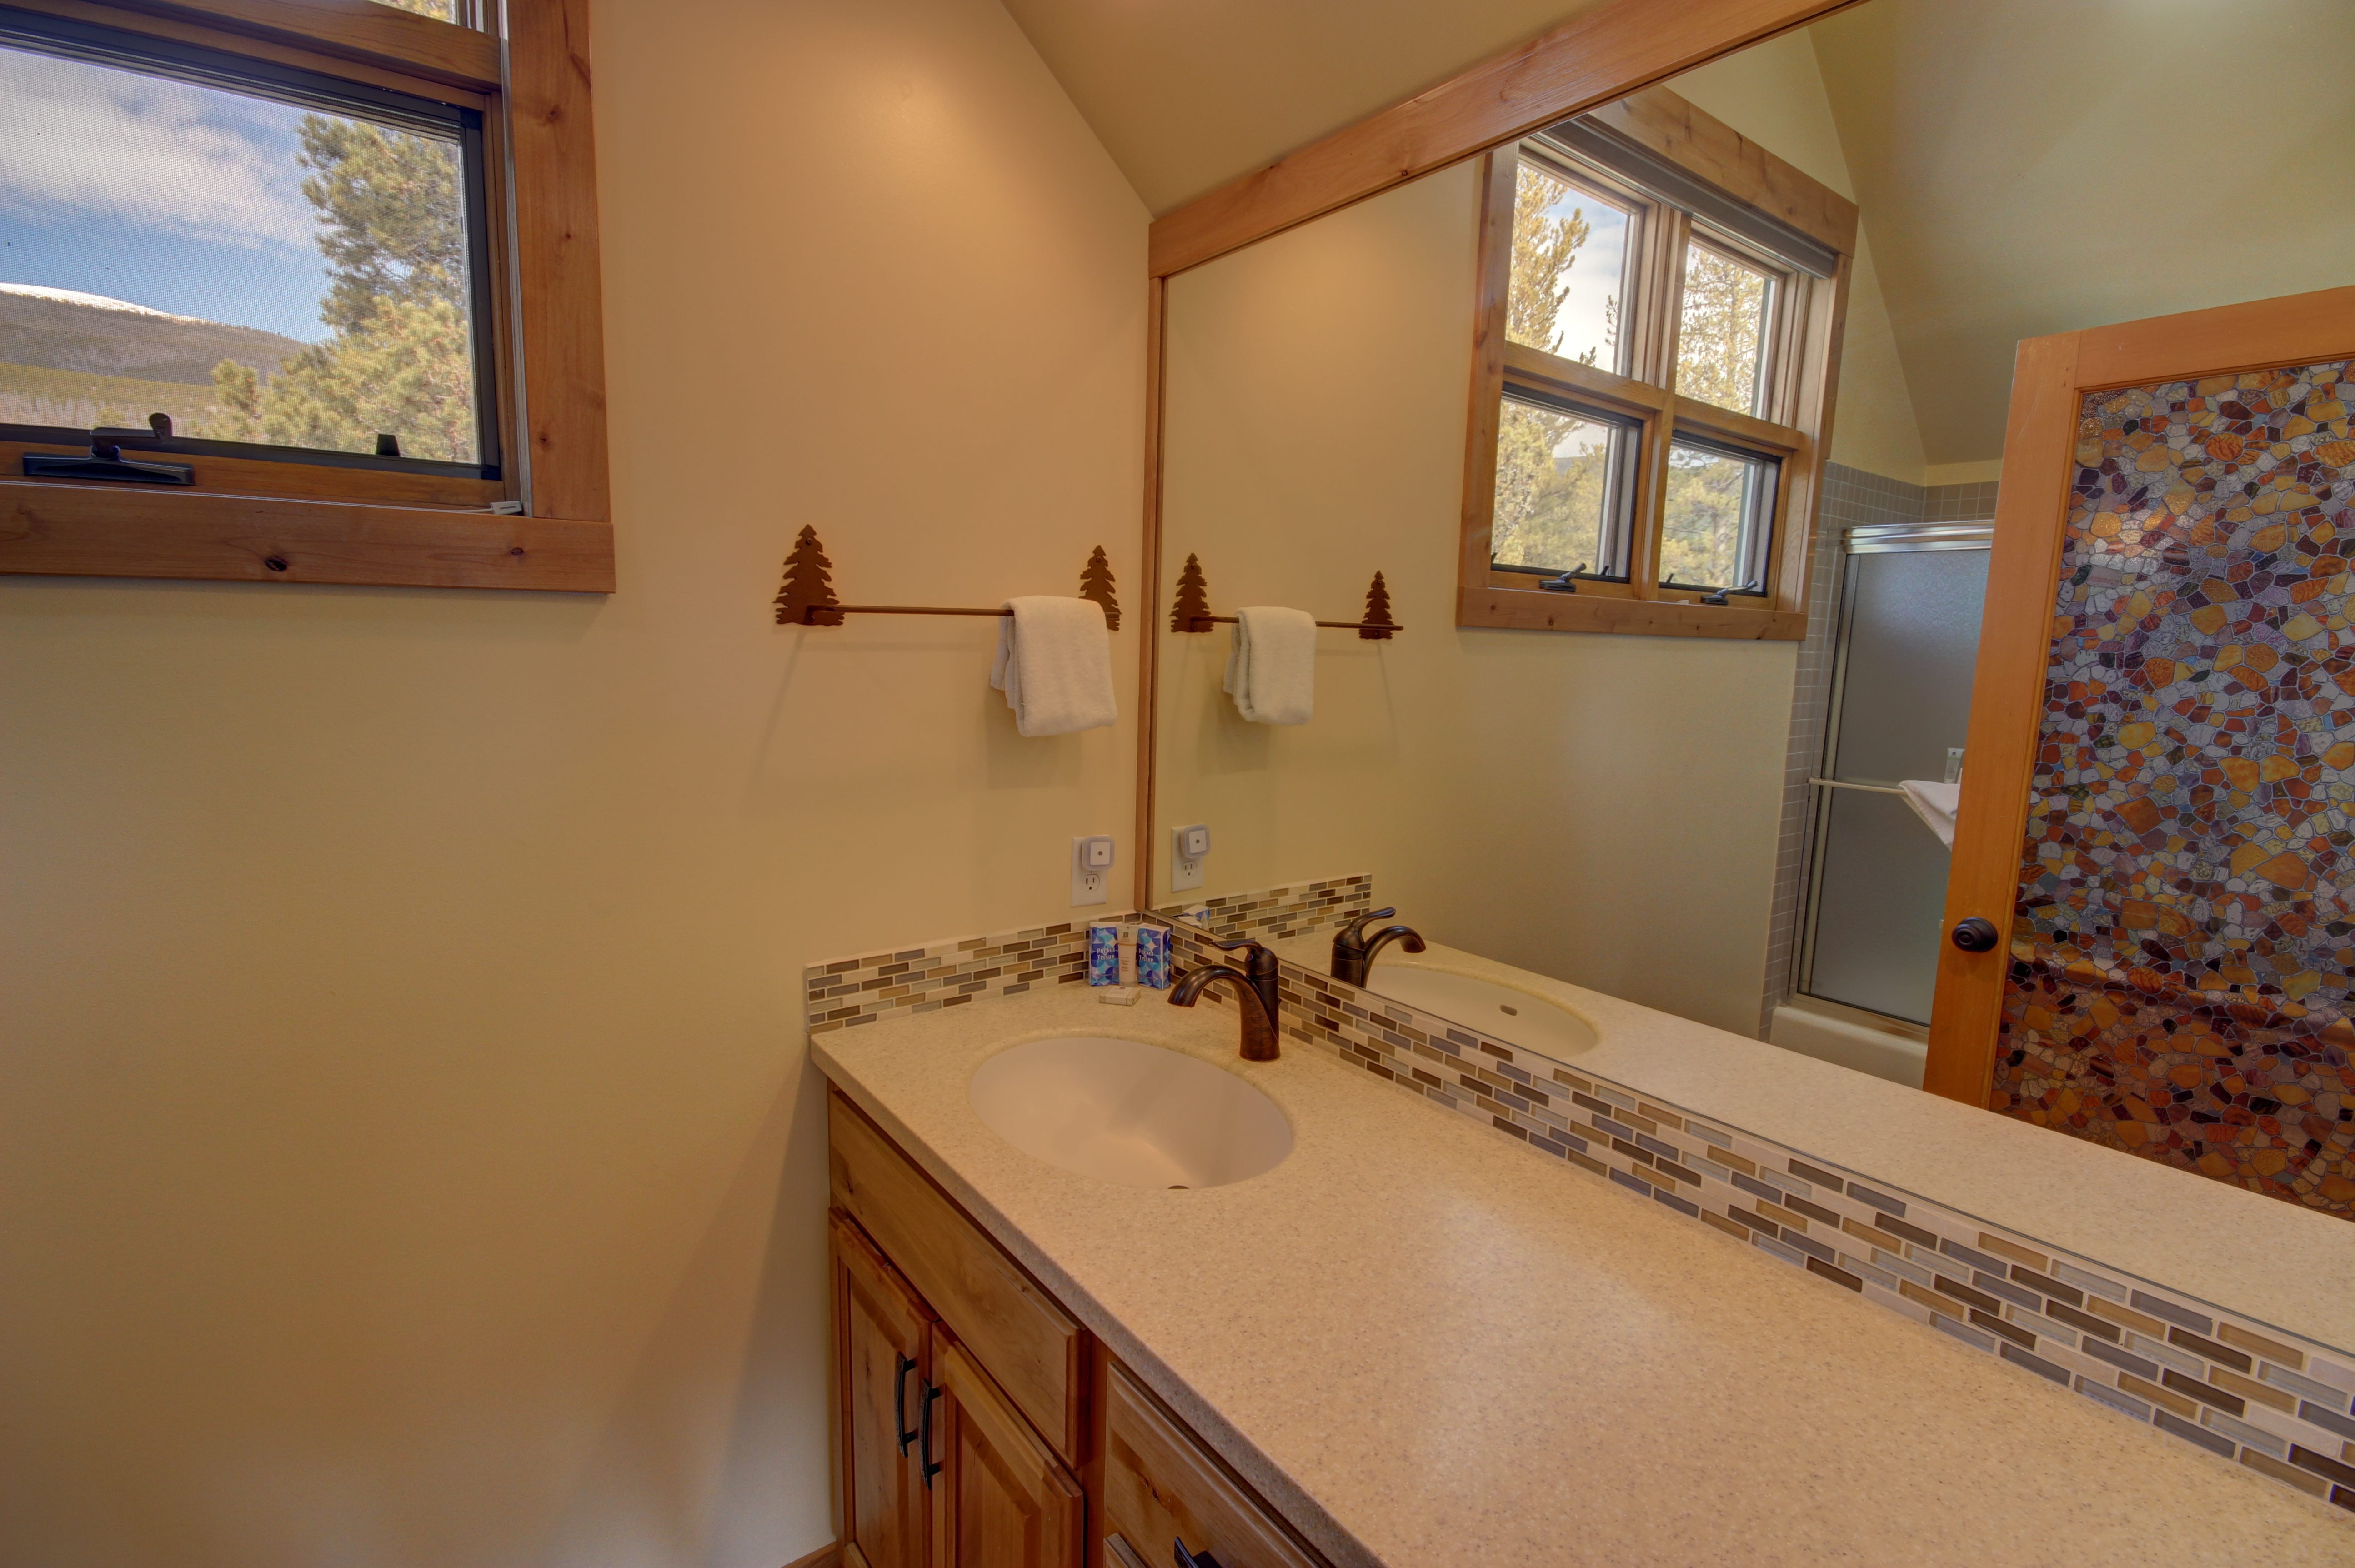 Bathroom with gorgeous countertops